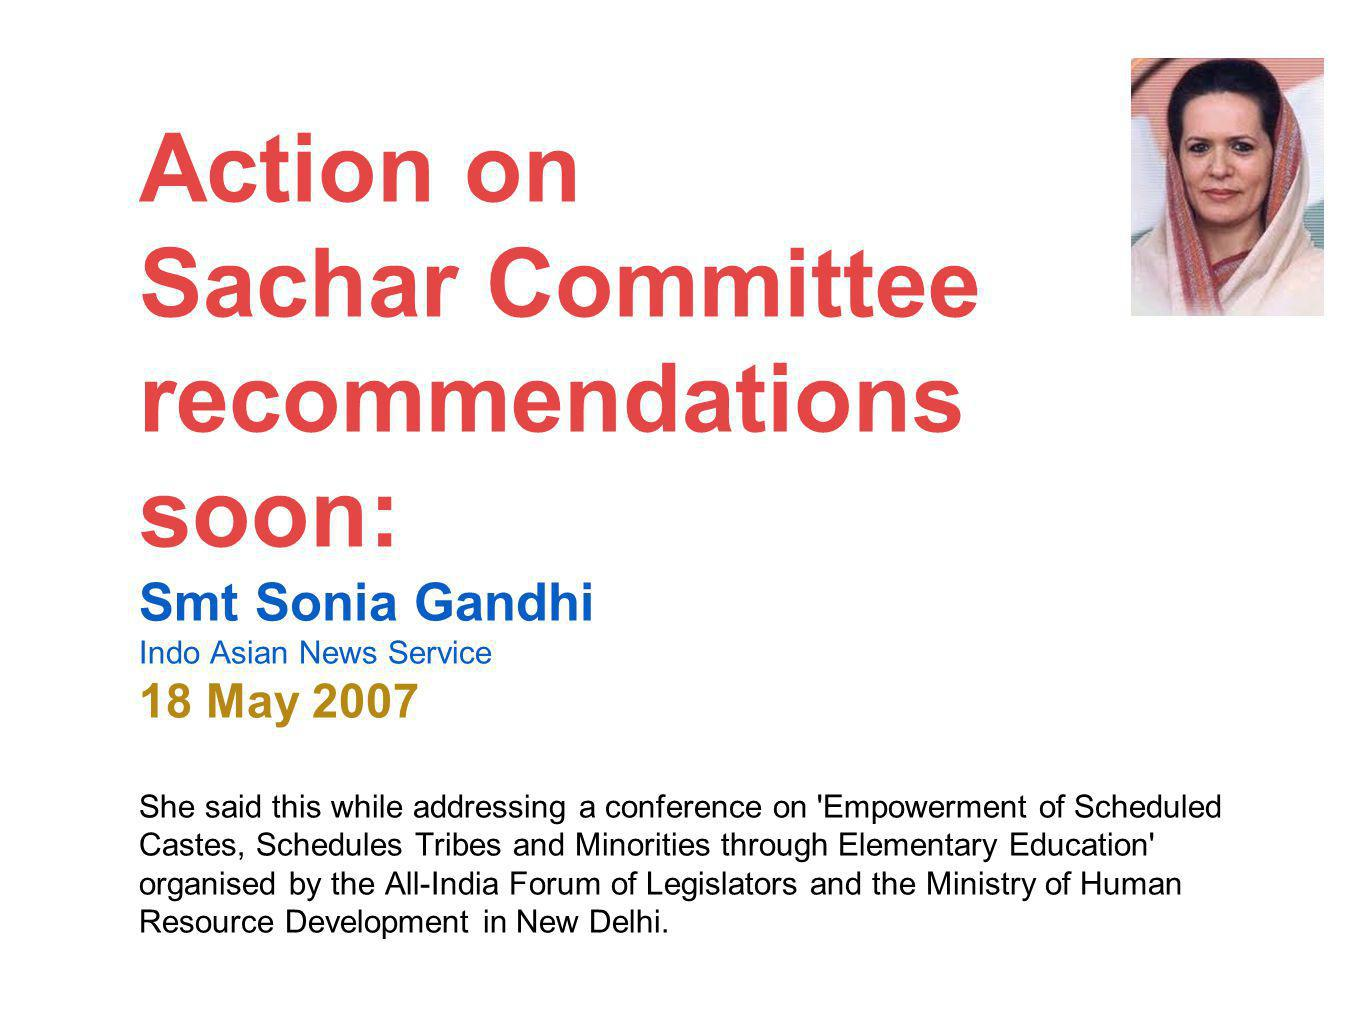 Action on Sachar Committee recommendations soon: Smt Sonia Gandhi Indo Asian News Service 18 May 2007 She said this while addressing a conference on Empowerment of Scheduled Castes, Schedules Tribes and Minorities through Elementary Education organised by the All-India Forum of Legislators and the Ministry of Human Resource Development in New Delhi.